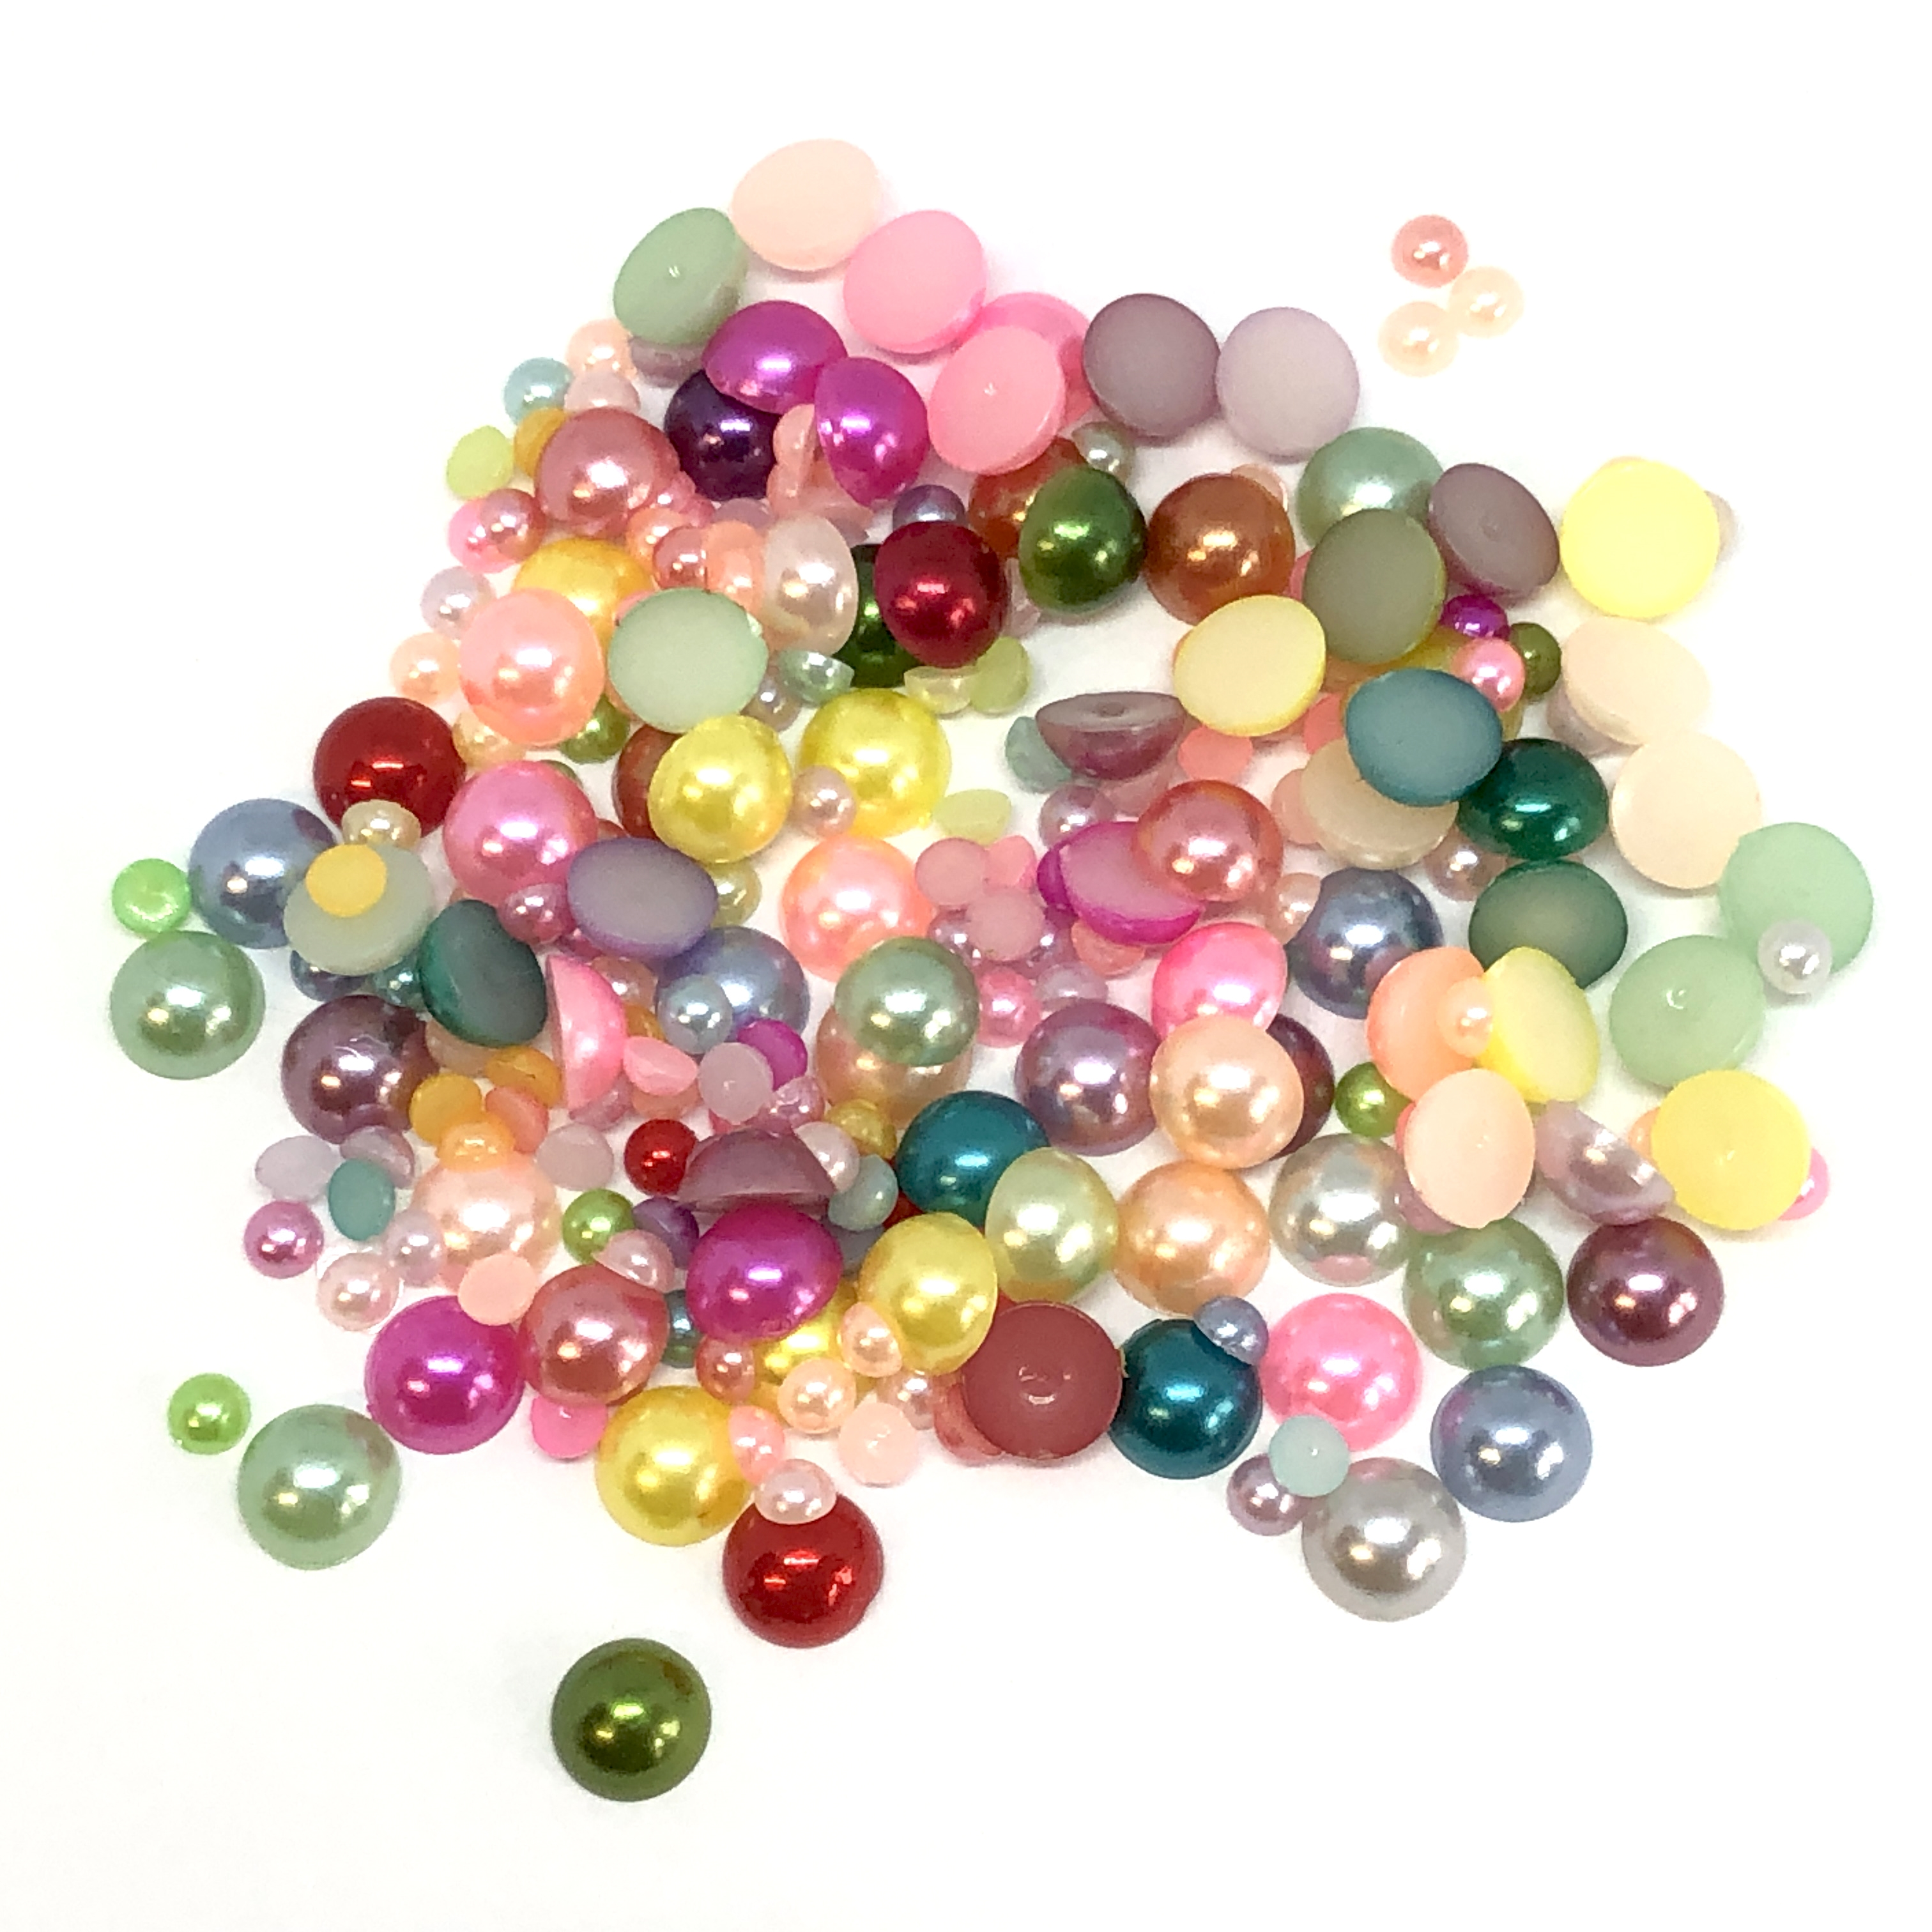 pearl cabochons, mixed,  flat backs, ab, 09213, pearls, no hole pearls, flat backs, mixed colors, mixed sizes,  bsueboutiques, jewelry making supplies, vintage jewelry supplies, spring colors, flat back pearls, warm cream pearls,